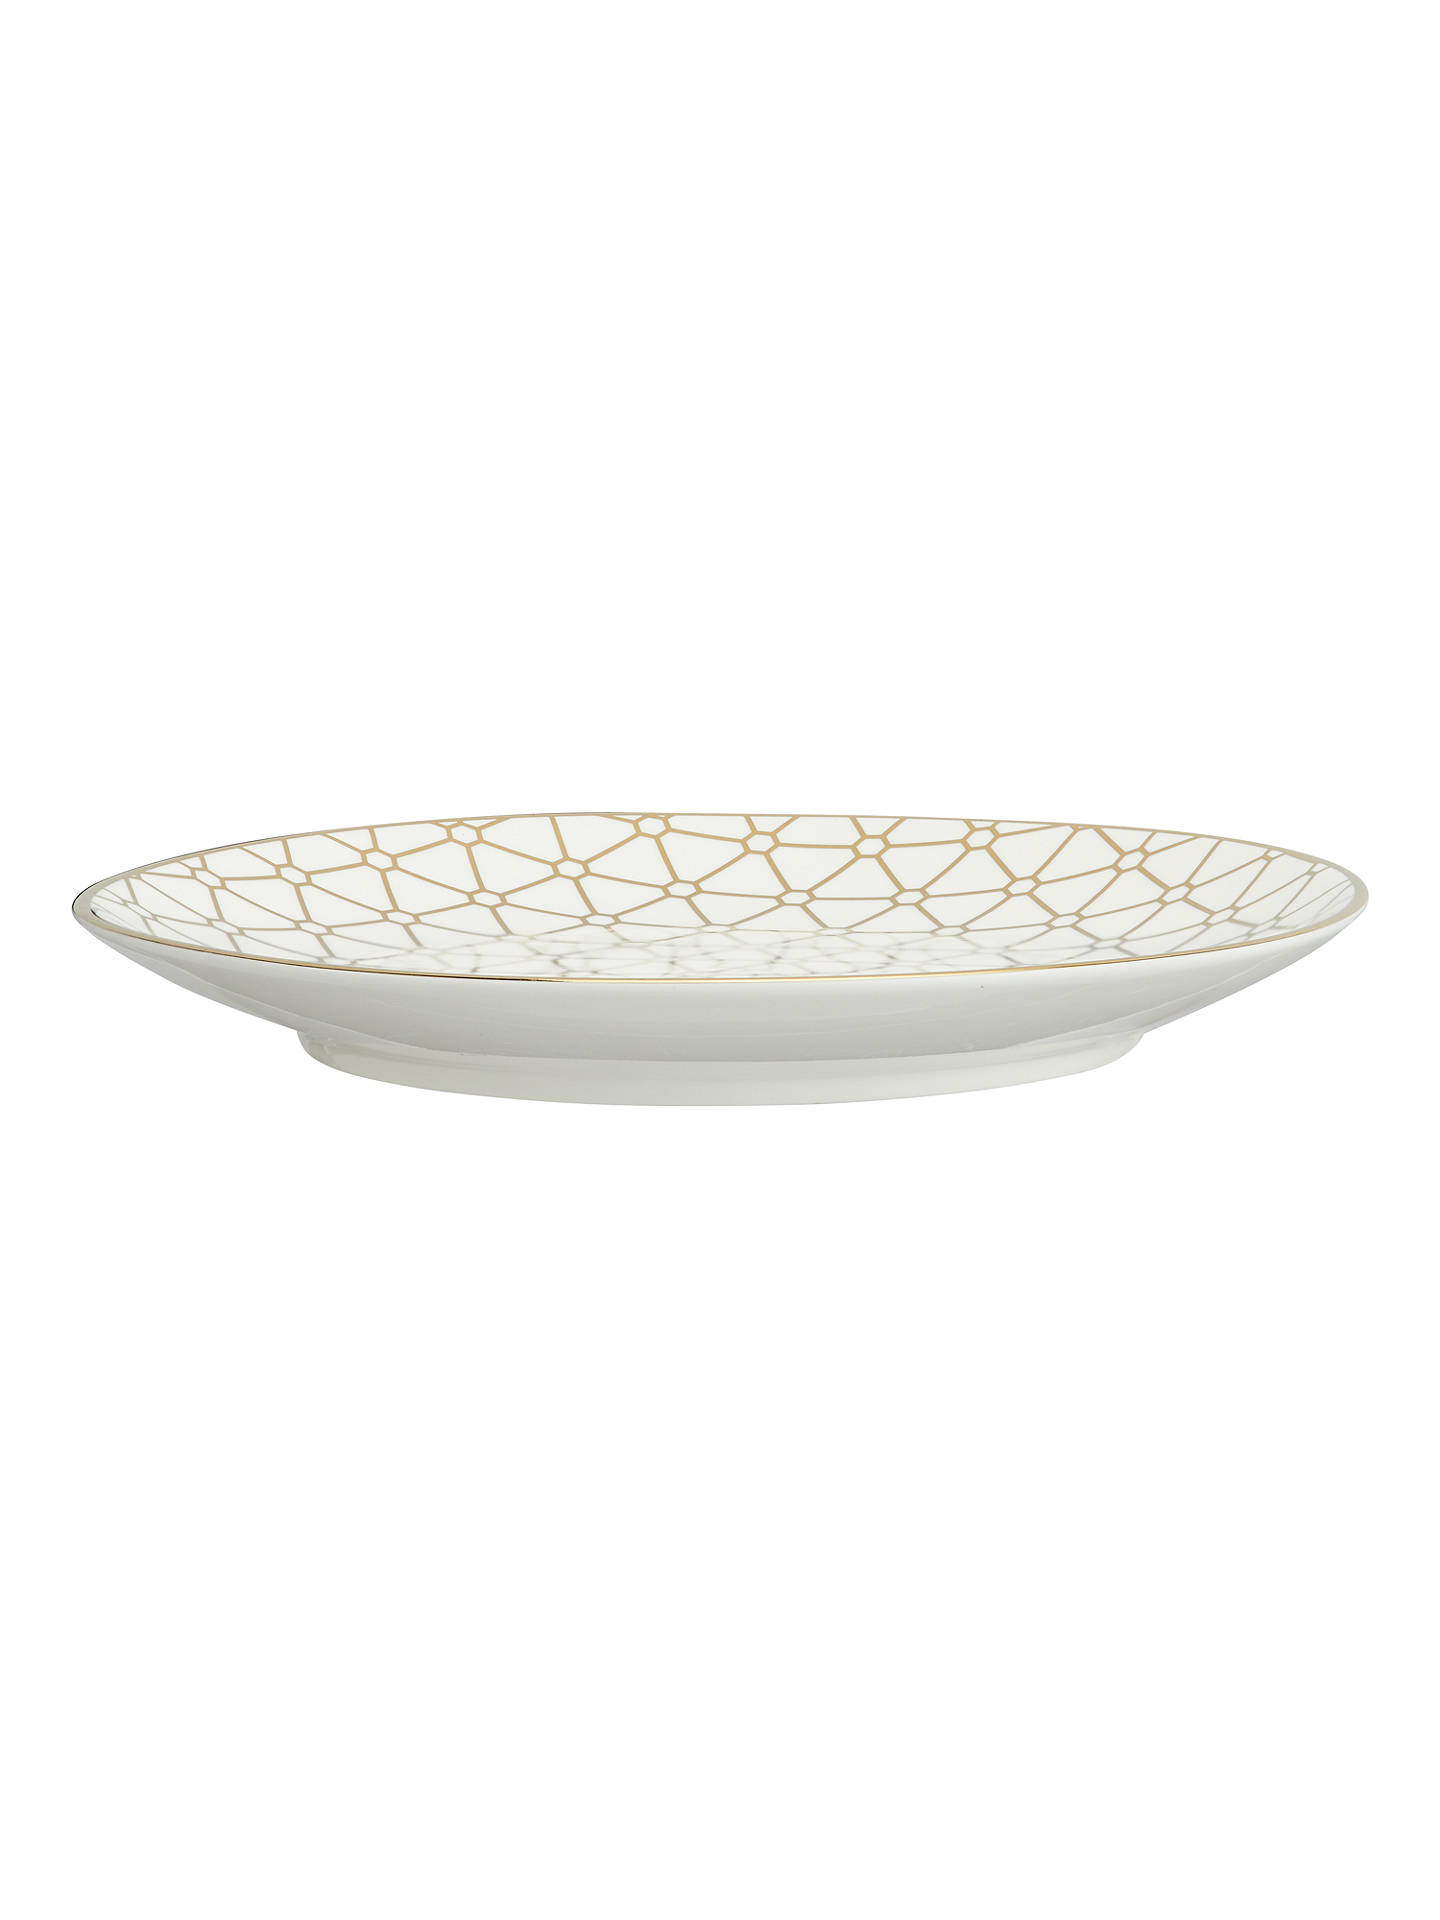 BuyJohn Lewis & Partners Gold Decorated Small Plates, Set of 4, Assorted Online at johnlewis.com